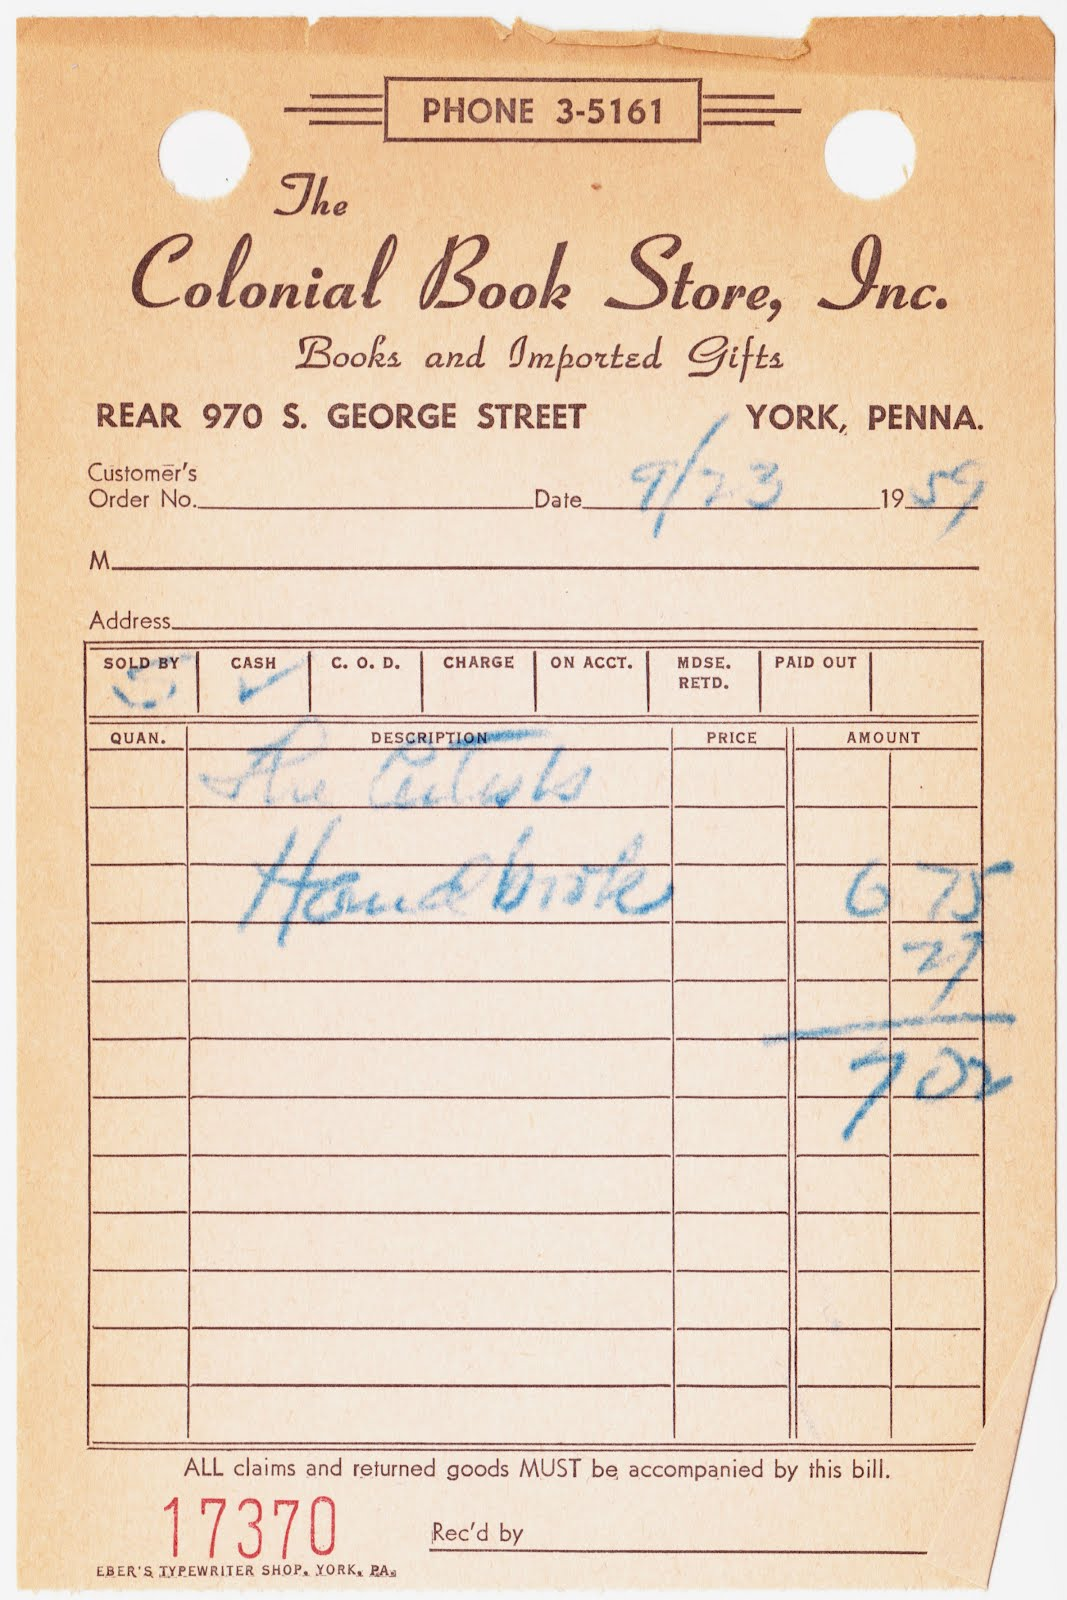 Papergreat 1959 Receipt From The Colonial Bookstore In York